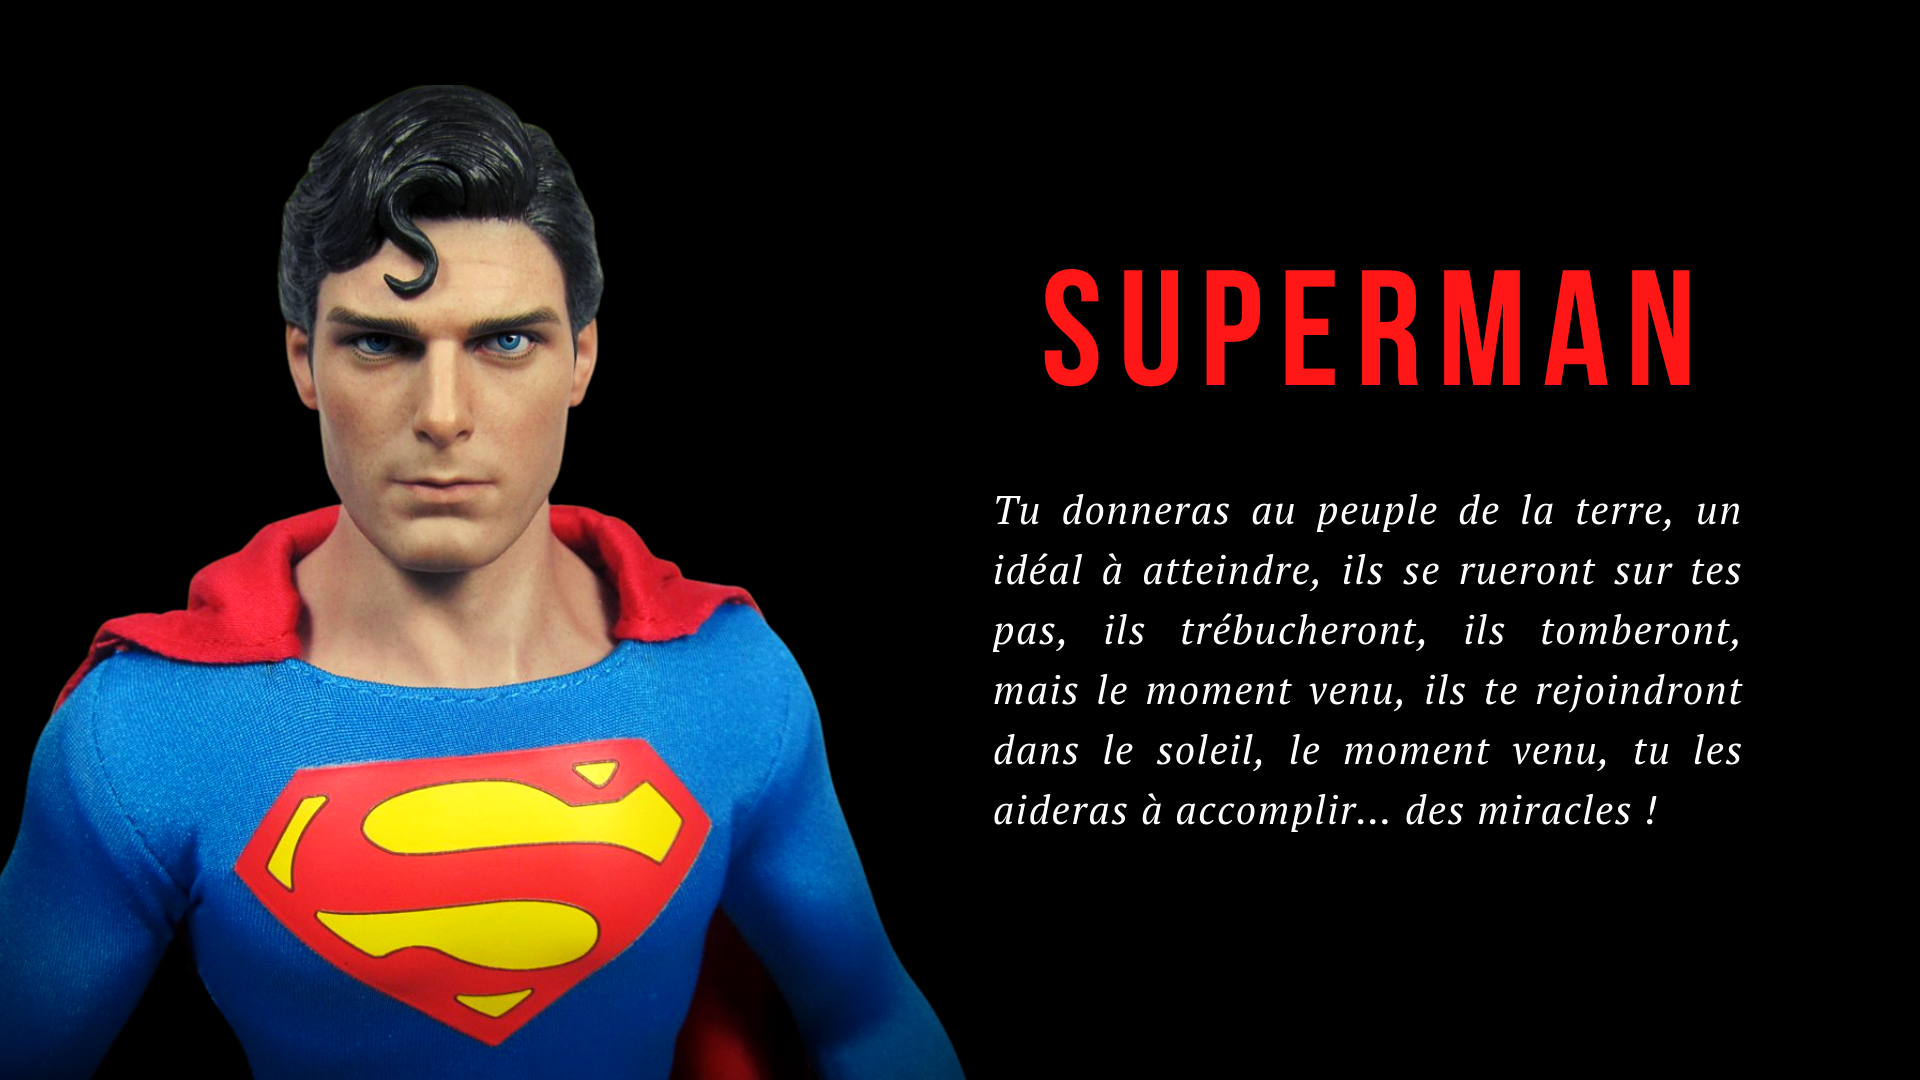 Fond d'écran Superman